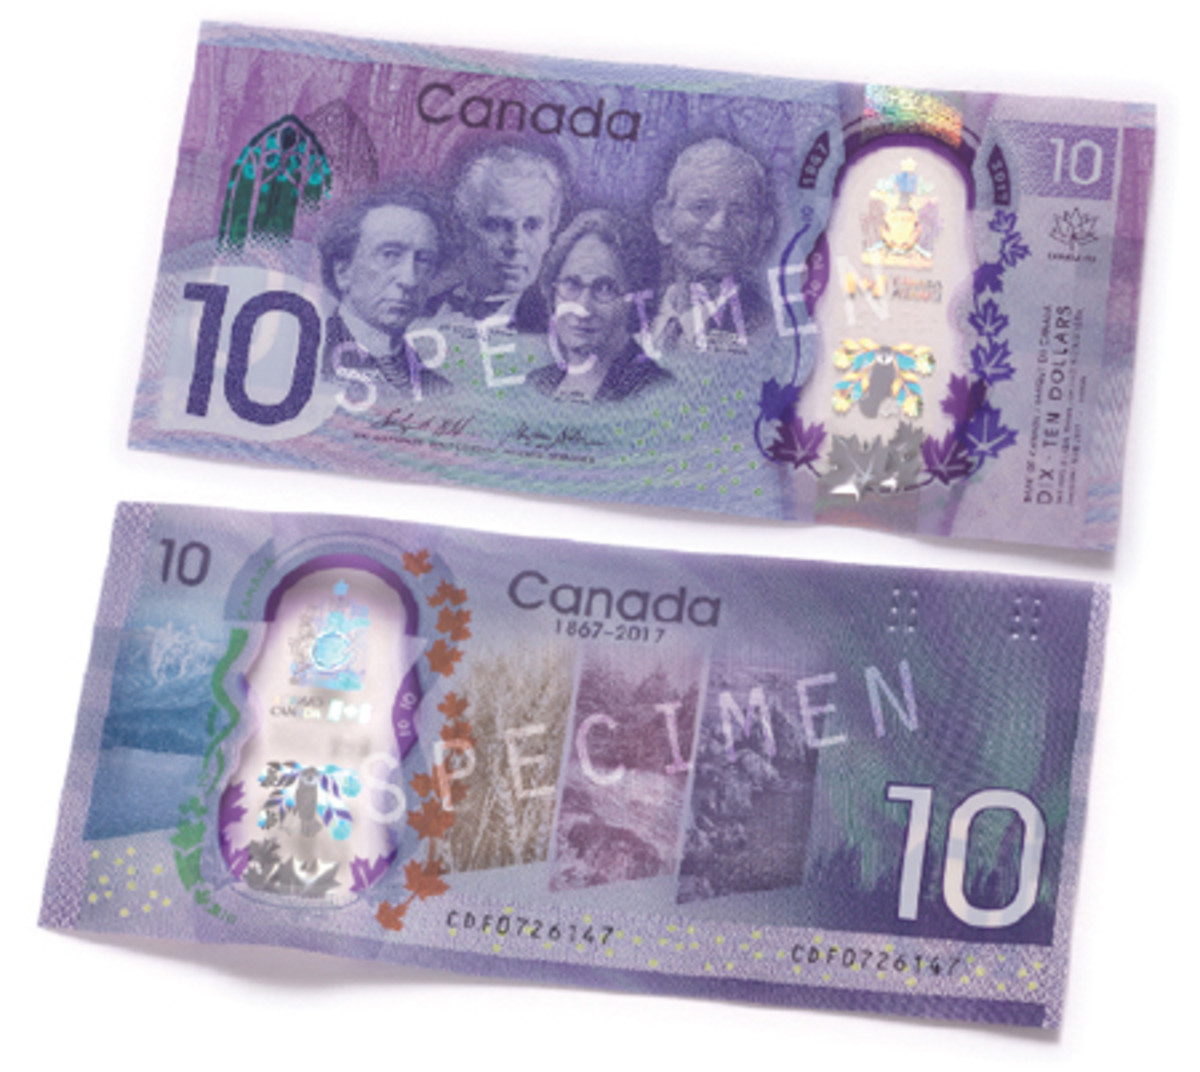 The new commemorative $10 marks only the fourth commemorative note issued by the Bank of Canada. (All images courtesy Bank of Canada)